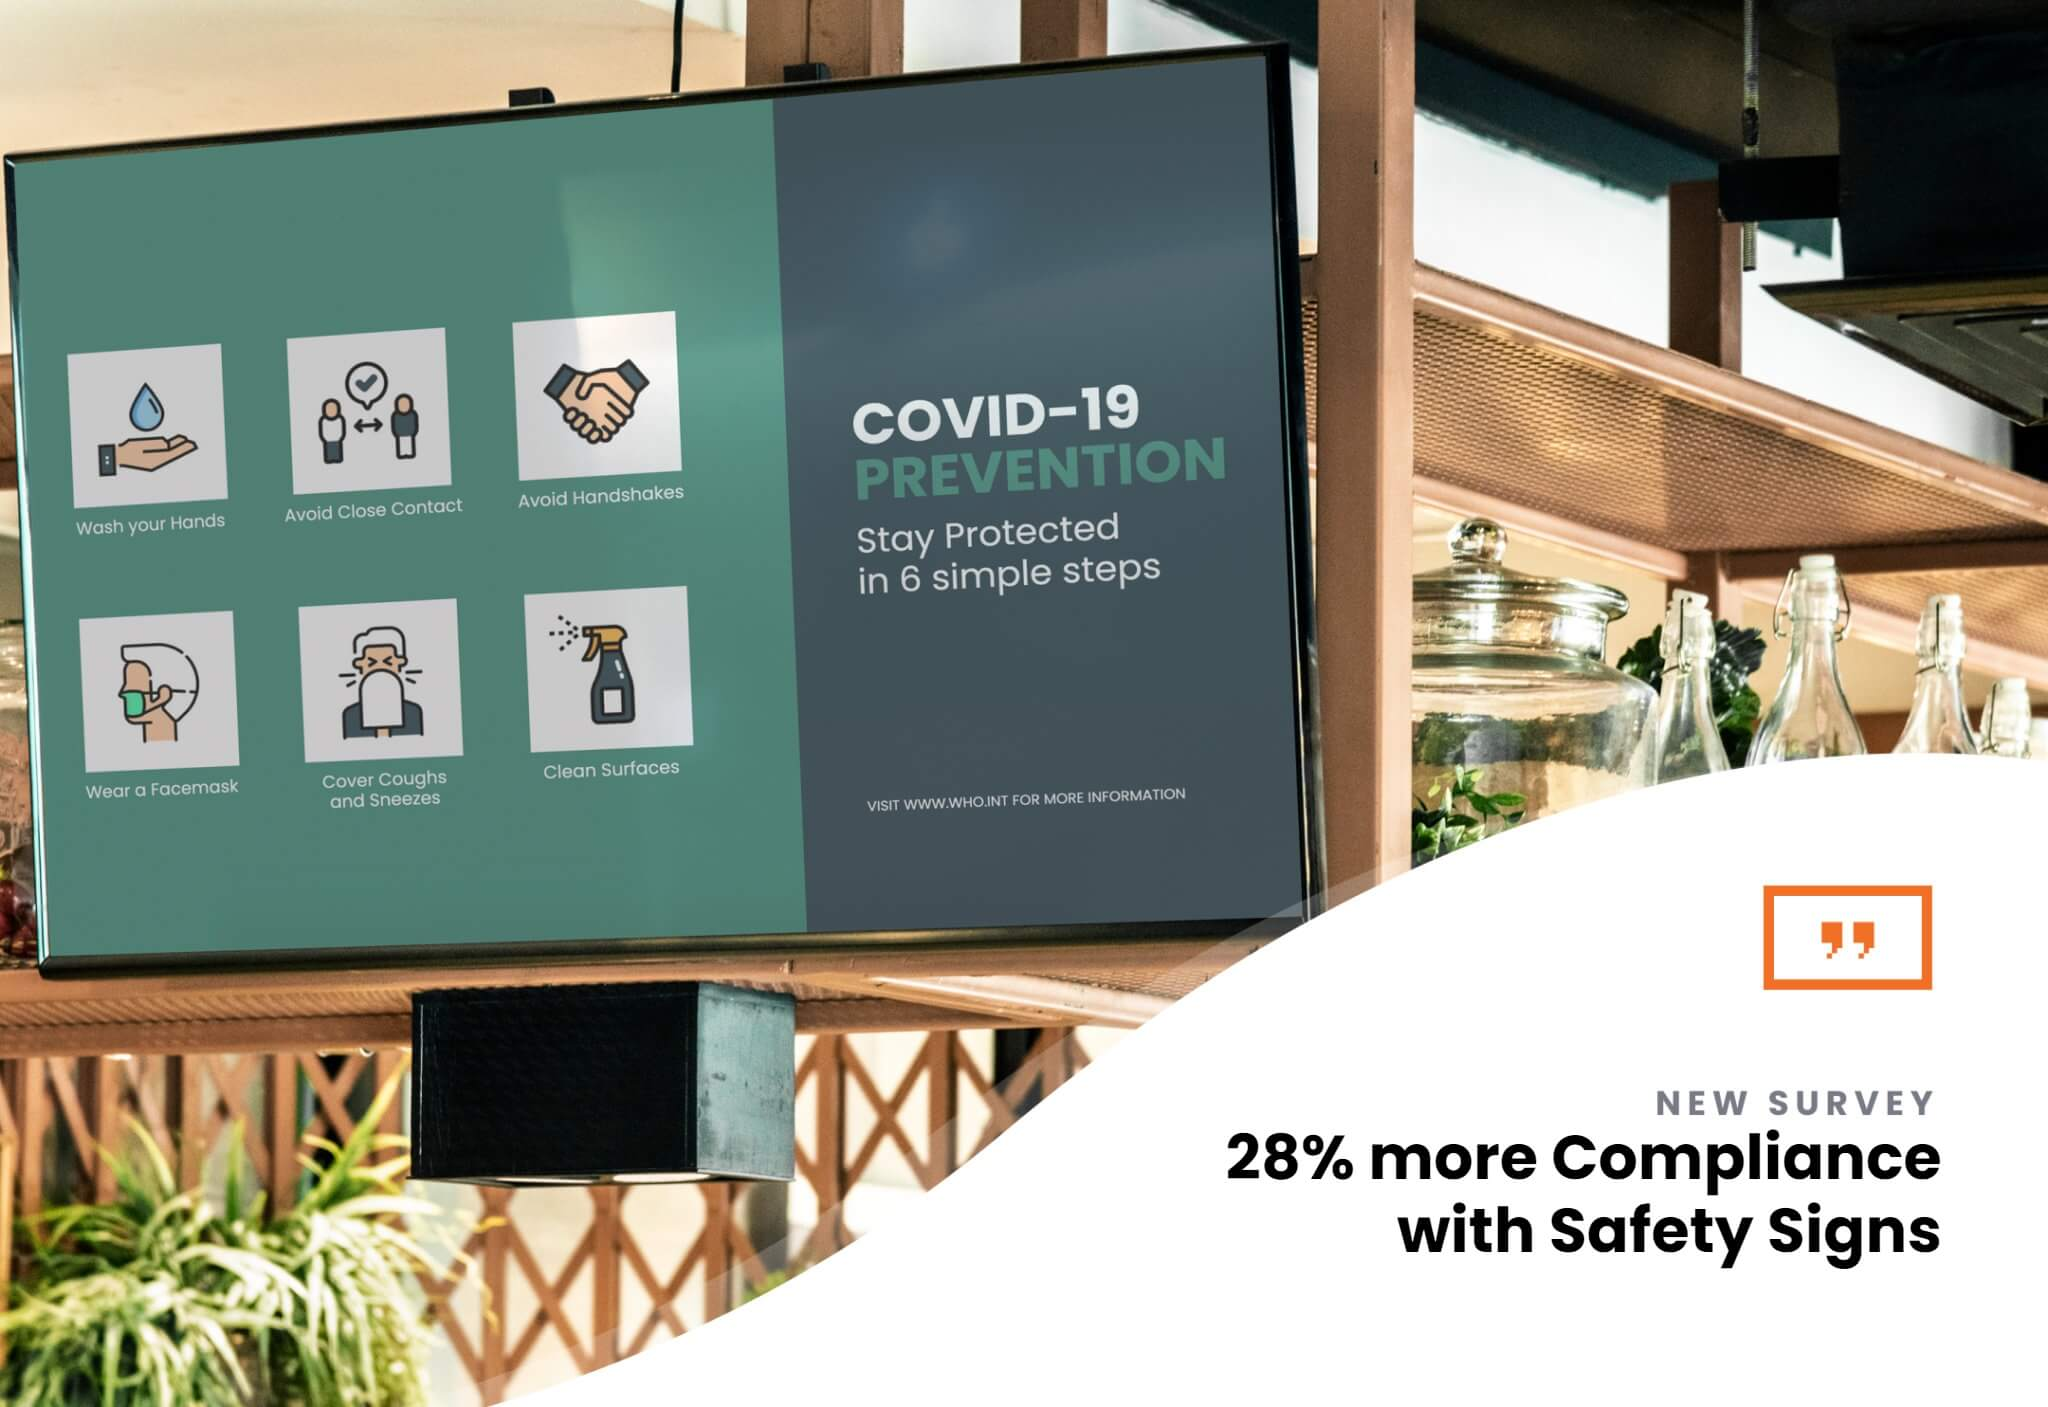 How Effective Are Safety Signs? Covid-19 Safety Signs Spur 28% Jump in Compliance